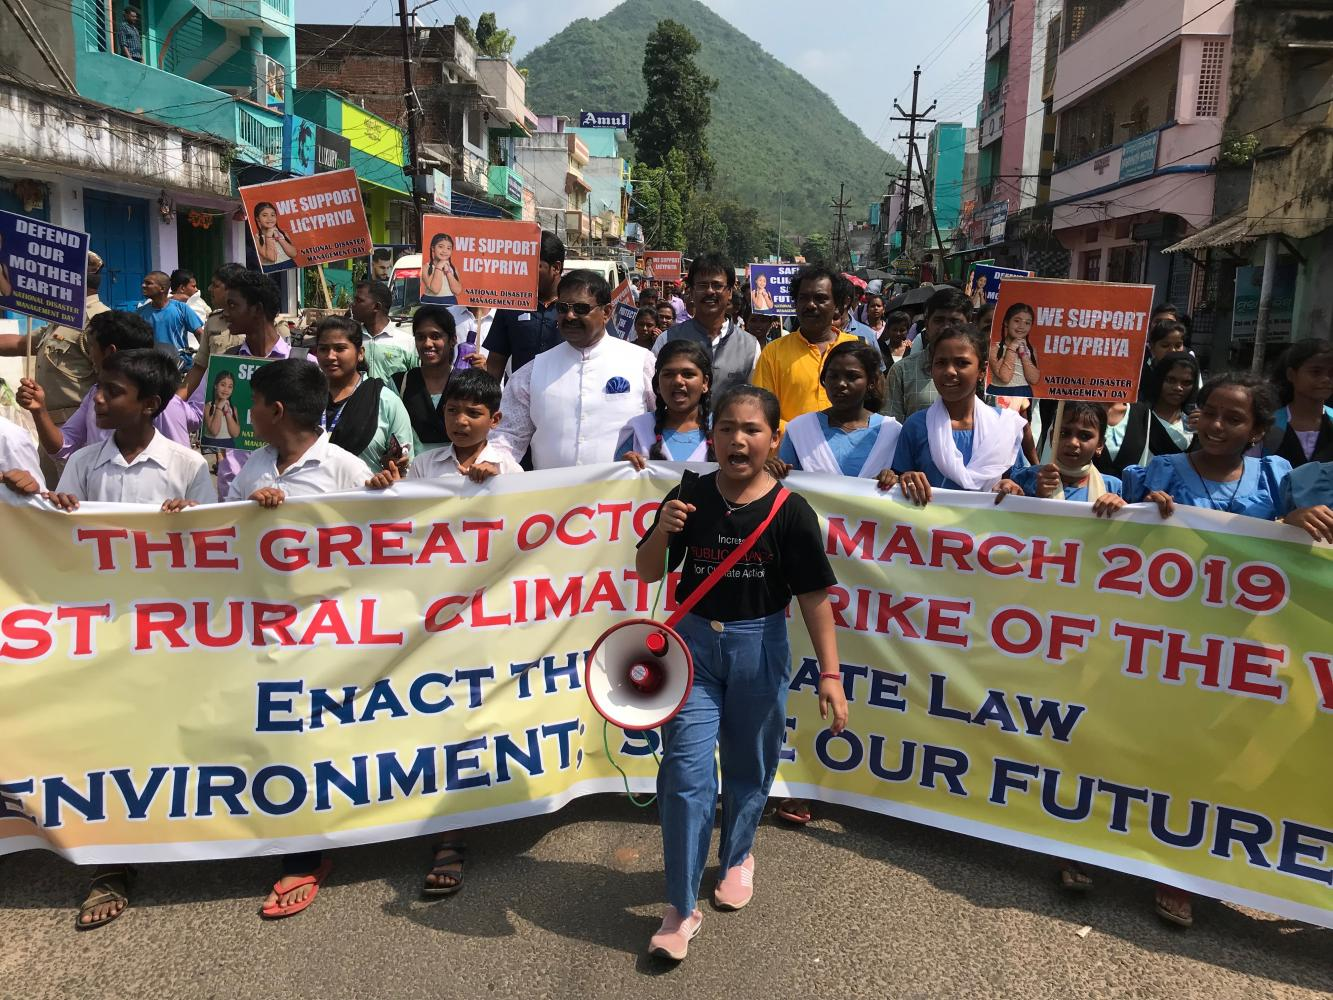 Licypriya Kangujam leads a climate strike in Odisha state of India in October 2019. Photo: The Child Movement via Reuters